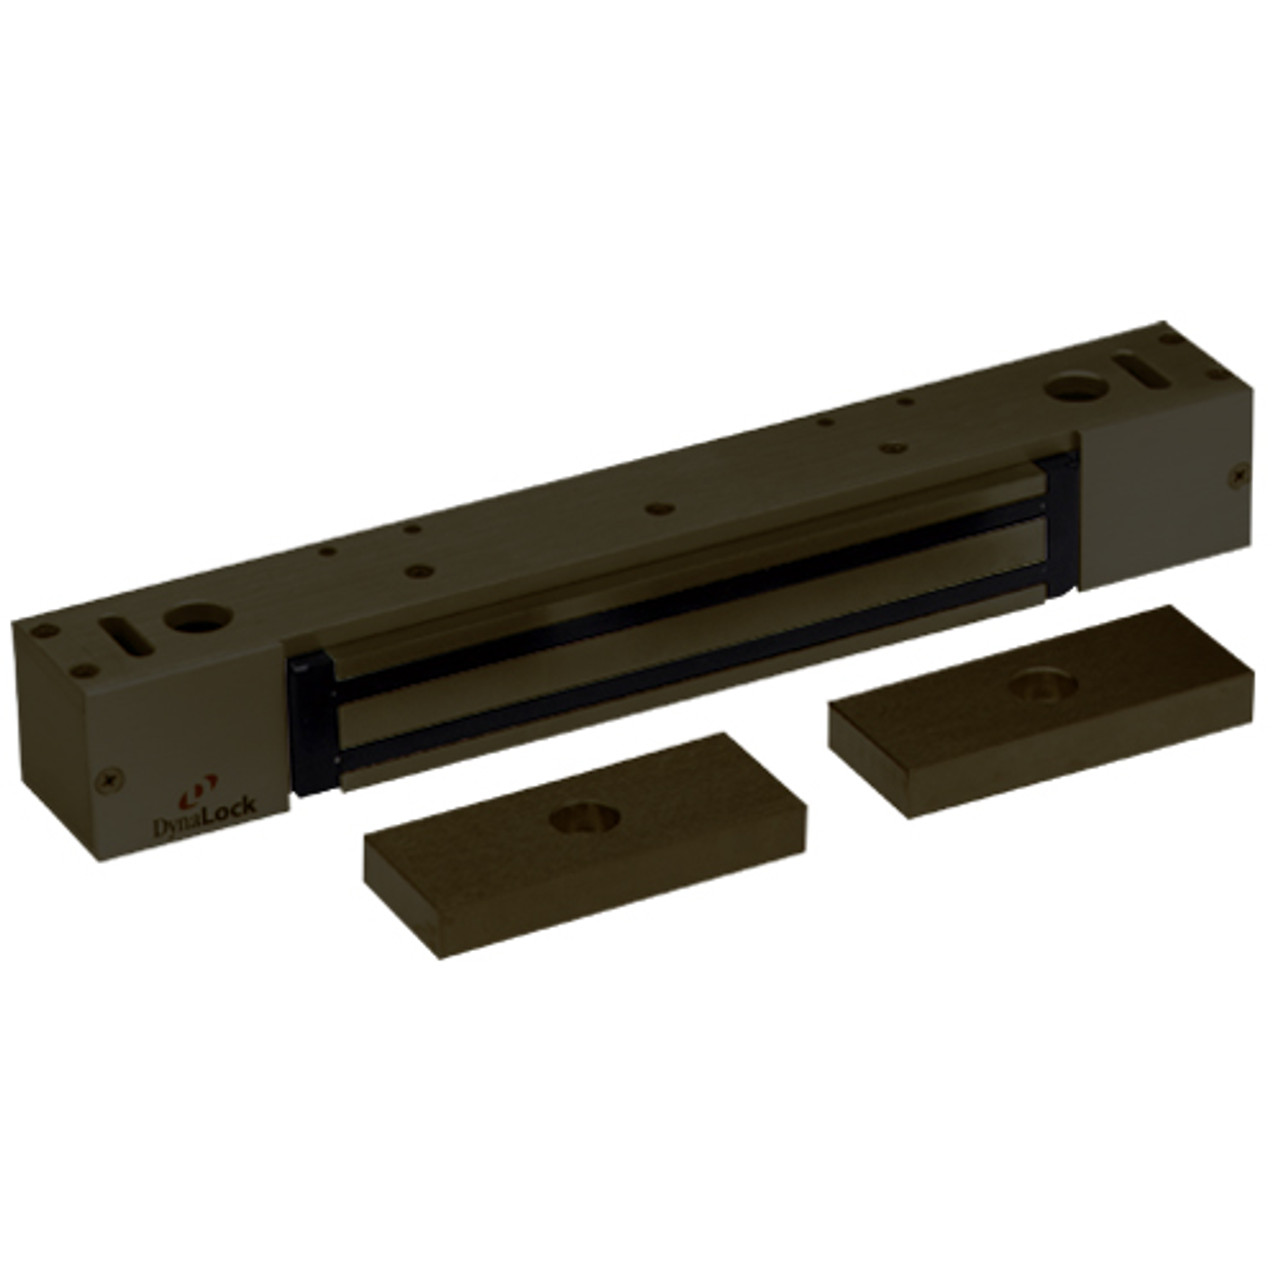 2268-15-US10B-ATS DynaLock 2268 Series Single Classic Low Profile Electromagnetic Lock for Pair Outswing Door with ATS in Oil Rubbed Bronze